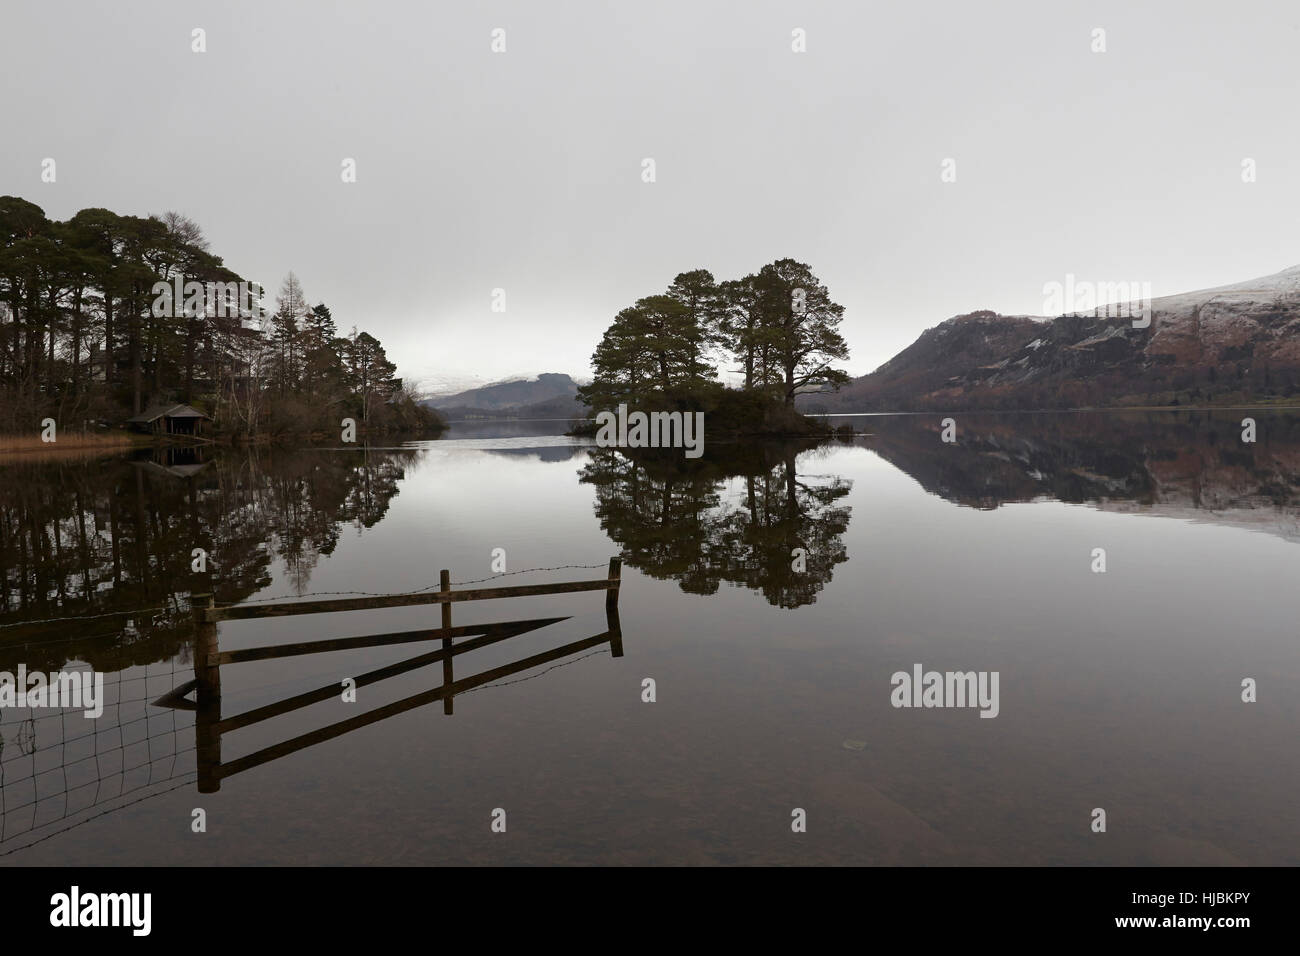 Mountains, a fence and trees reflected in the calm surface of Derwent water, Keswick, Cumbria, Lake District, England Stock Photo